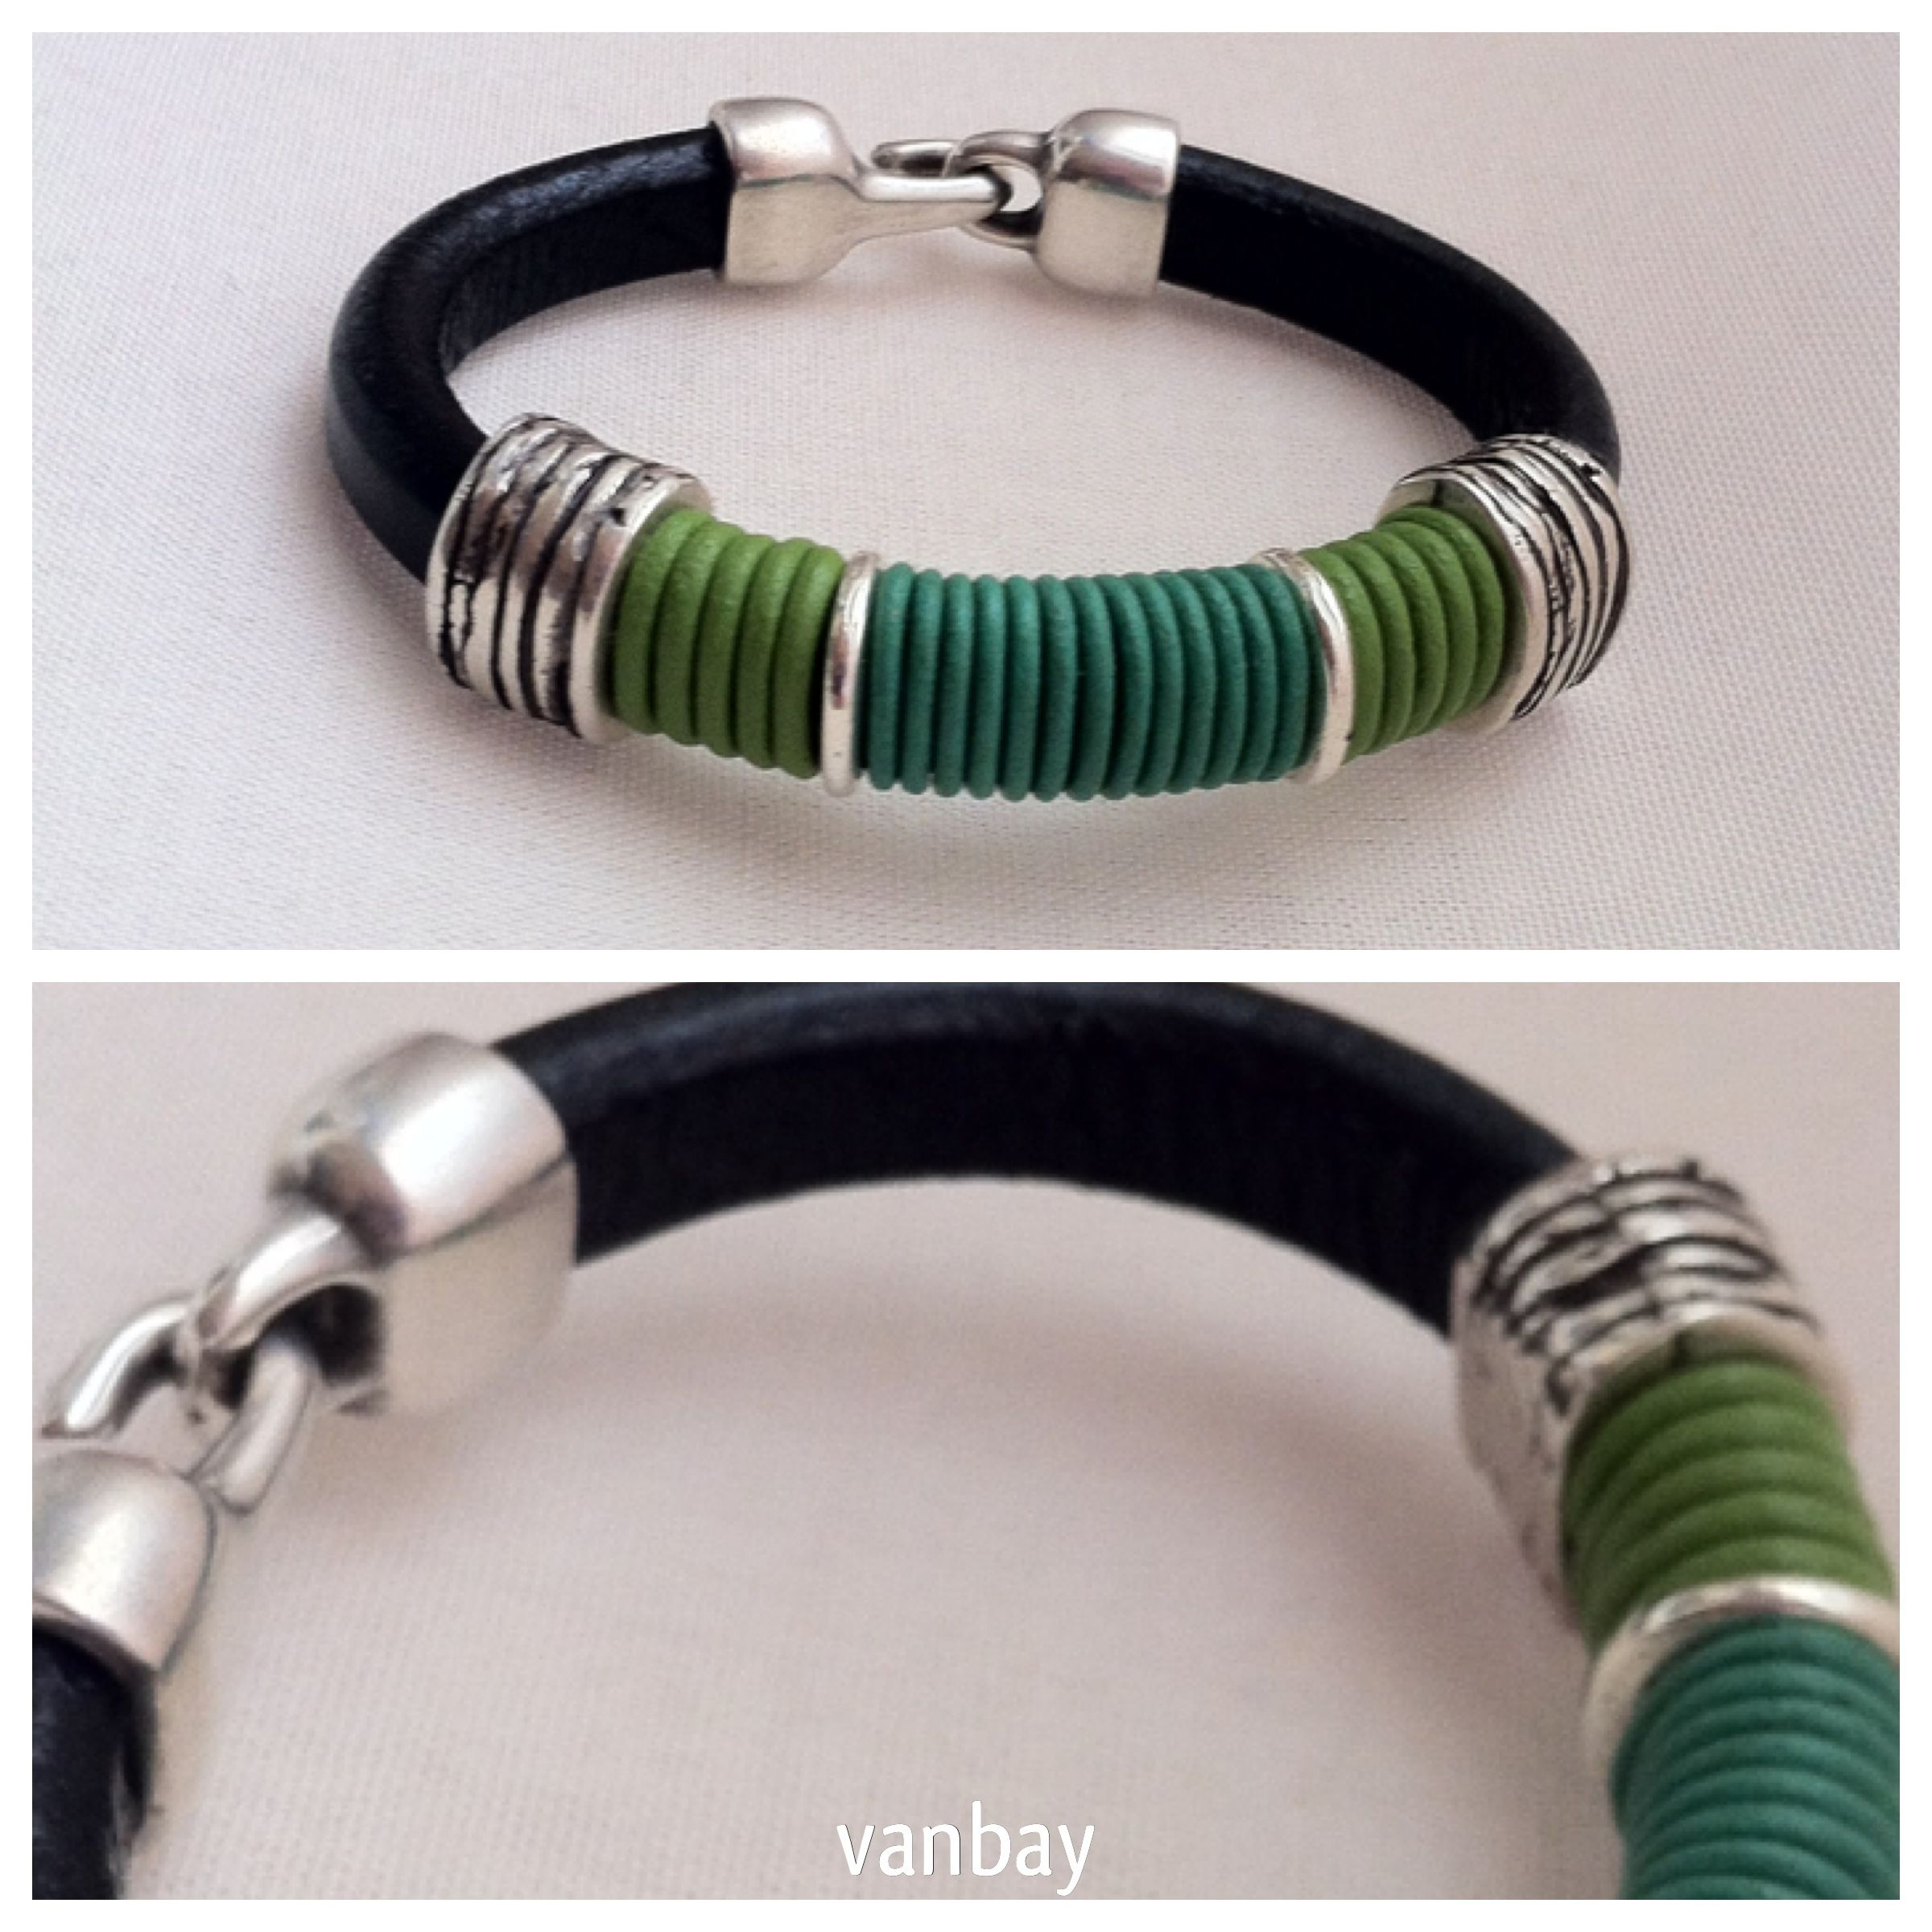 414c69966de9 Men bracelete, pulsera para hombre! Follow us on www.facebook.com ...